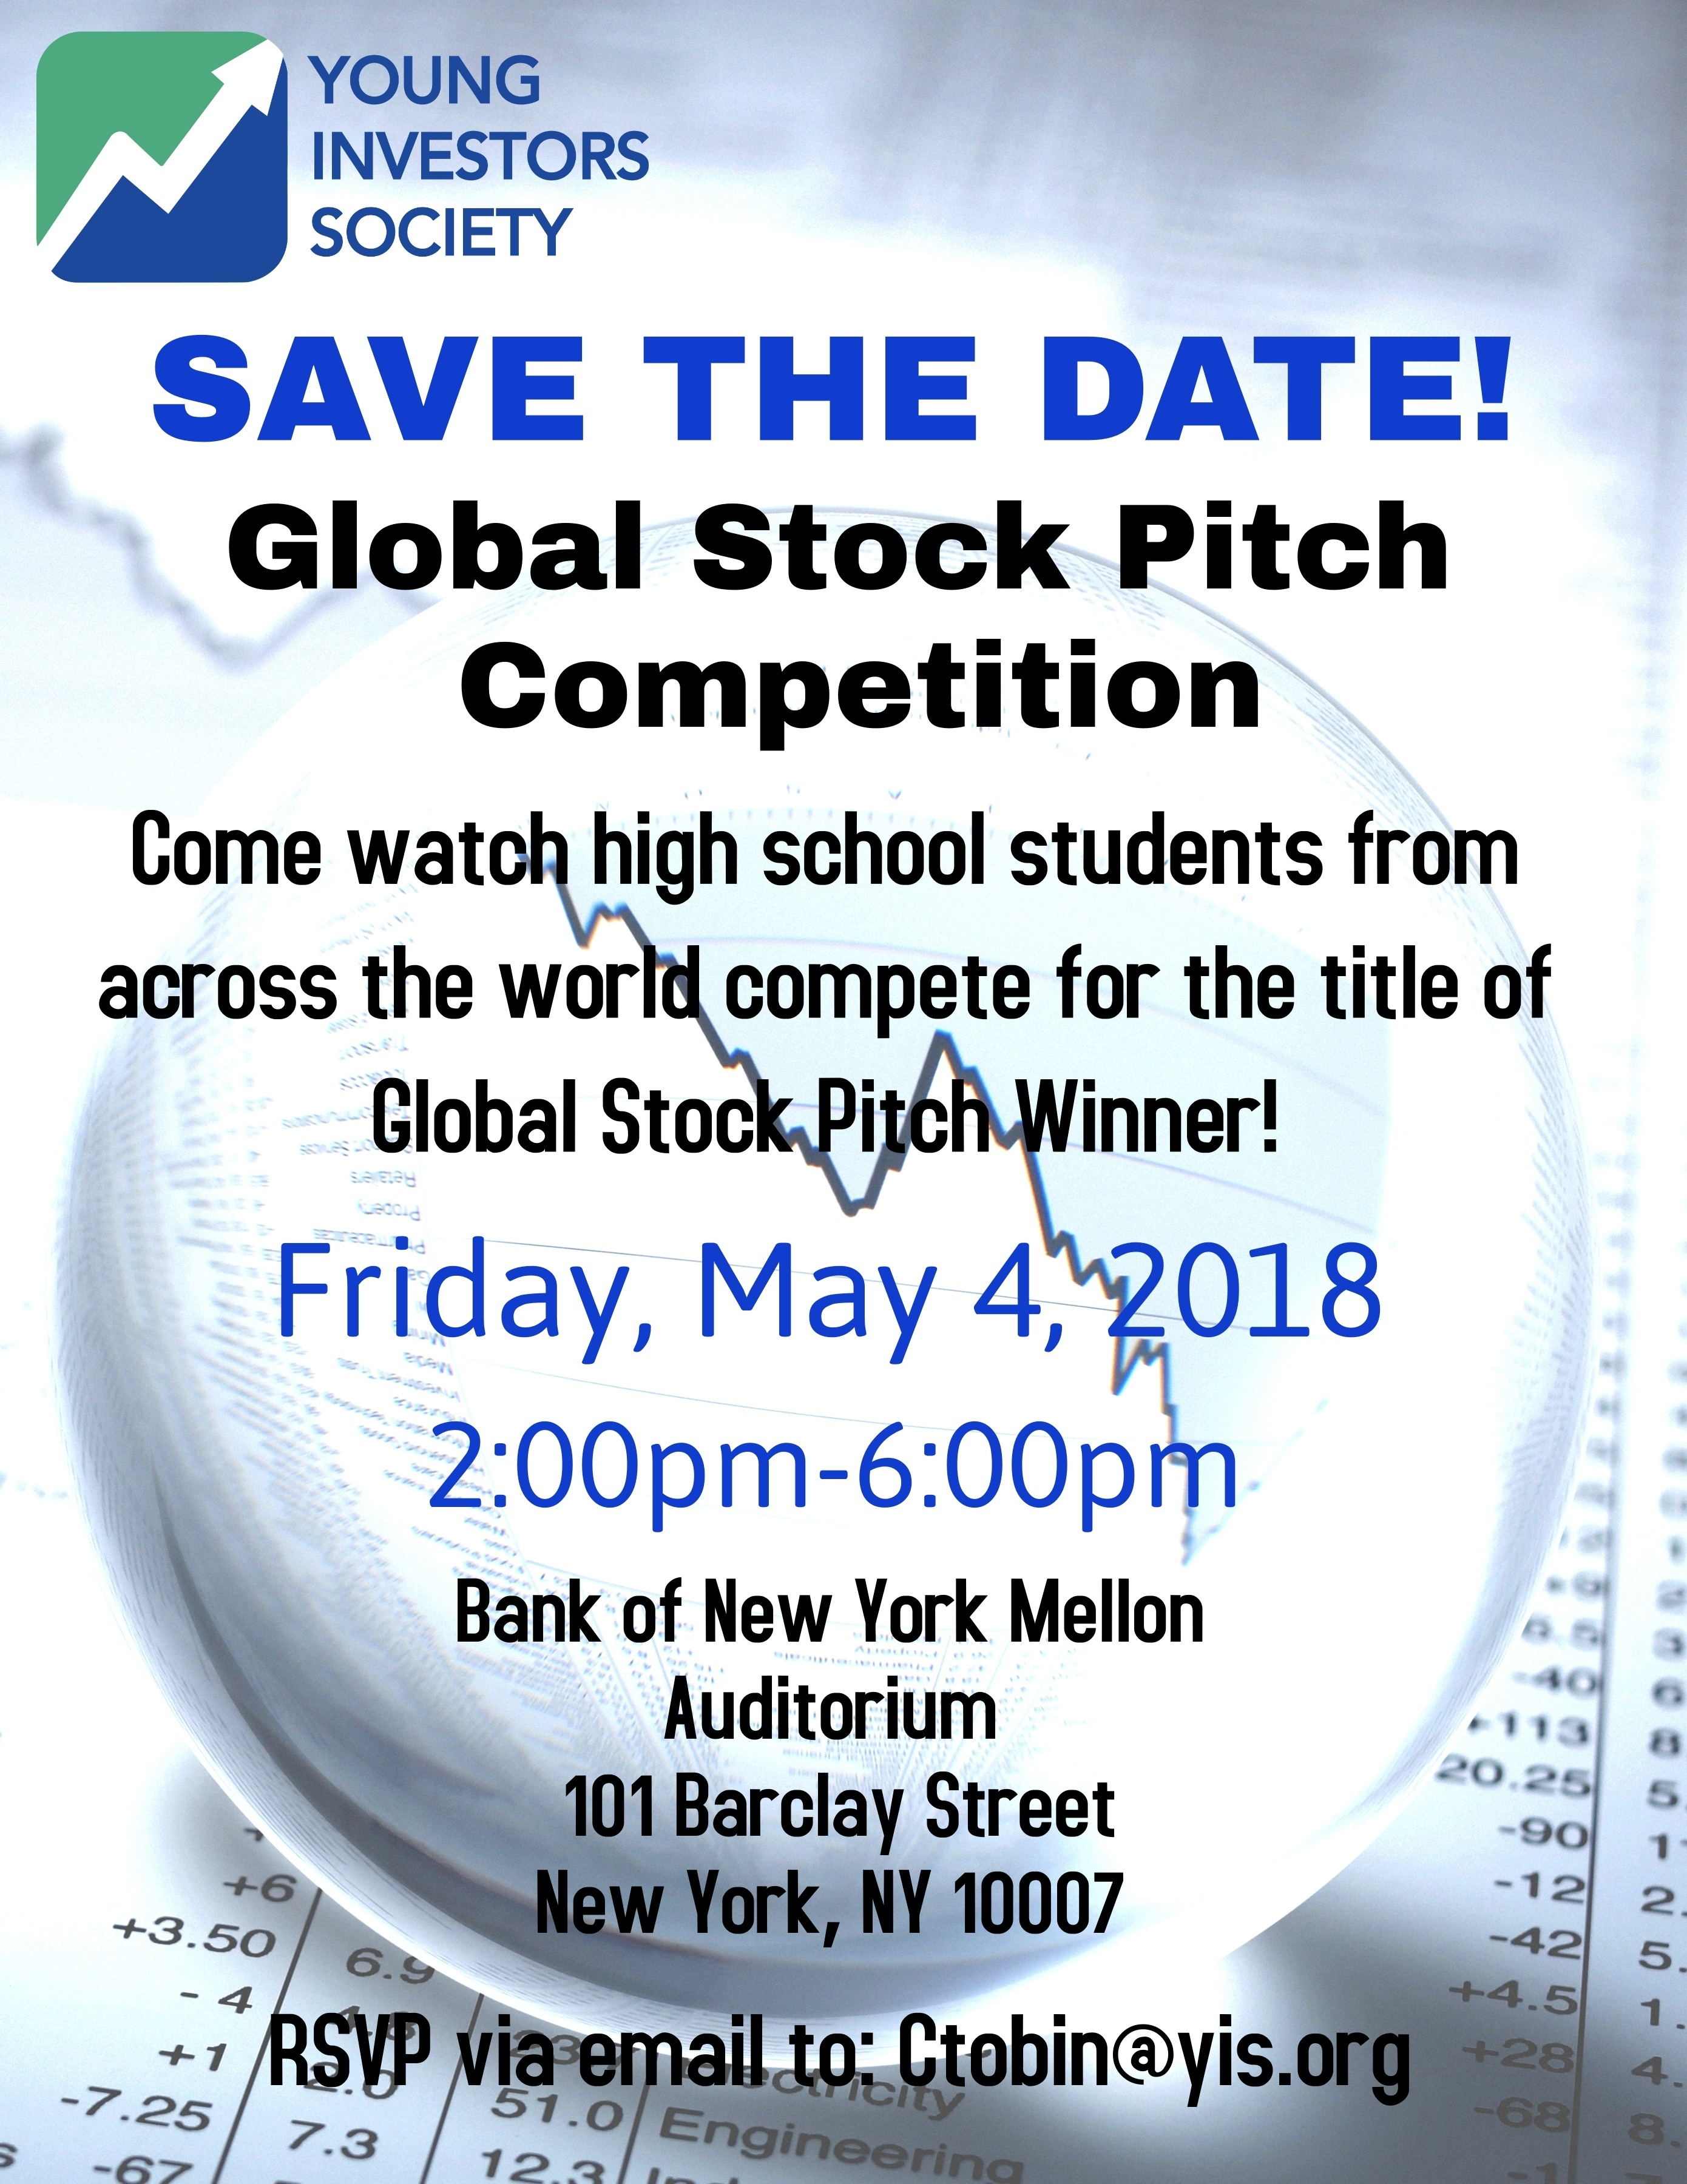 Save the Date: Global Stock Pitch Competition on May 4, 2018